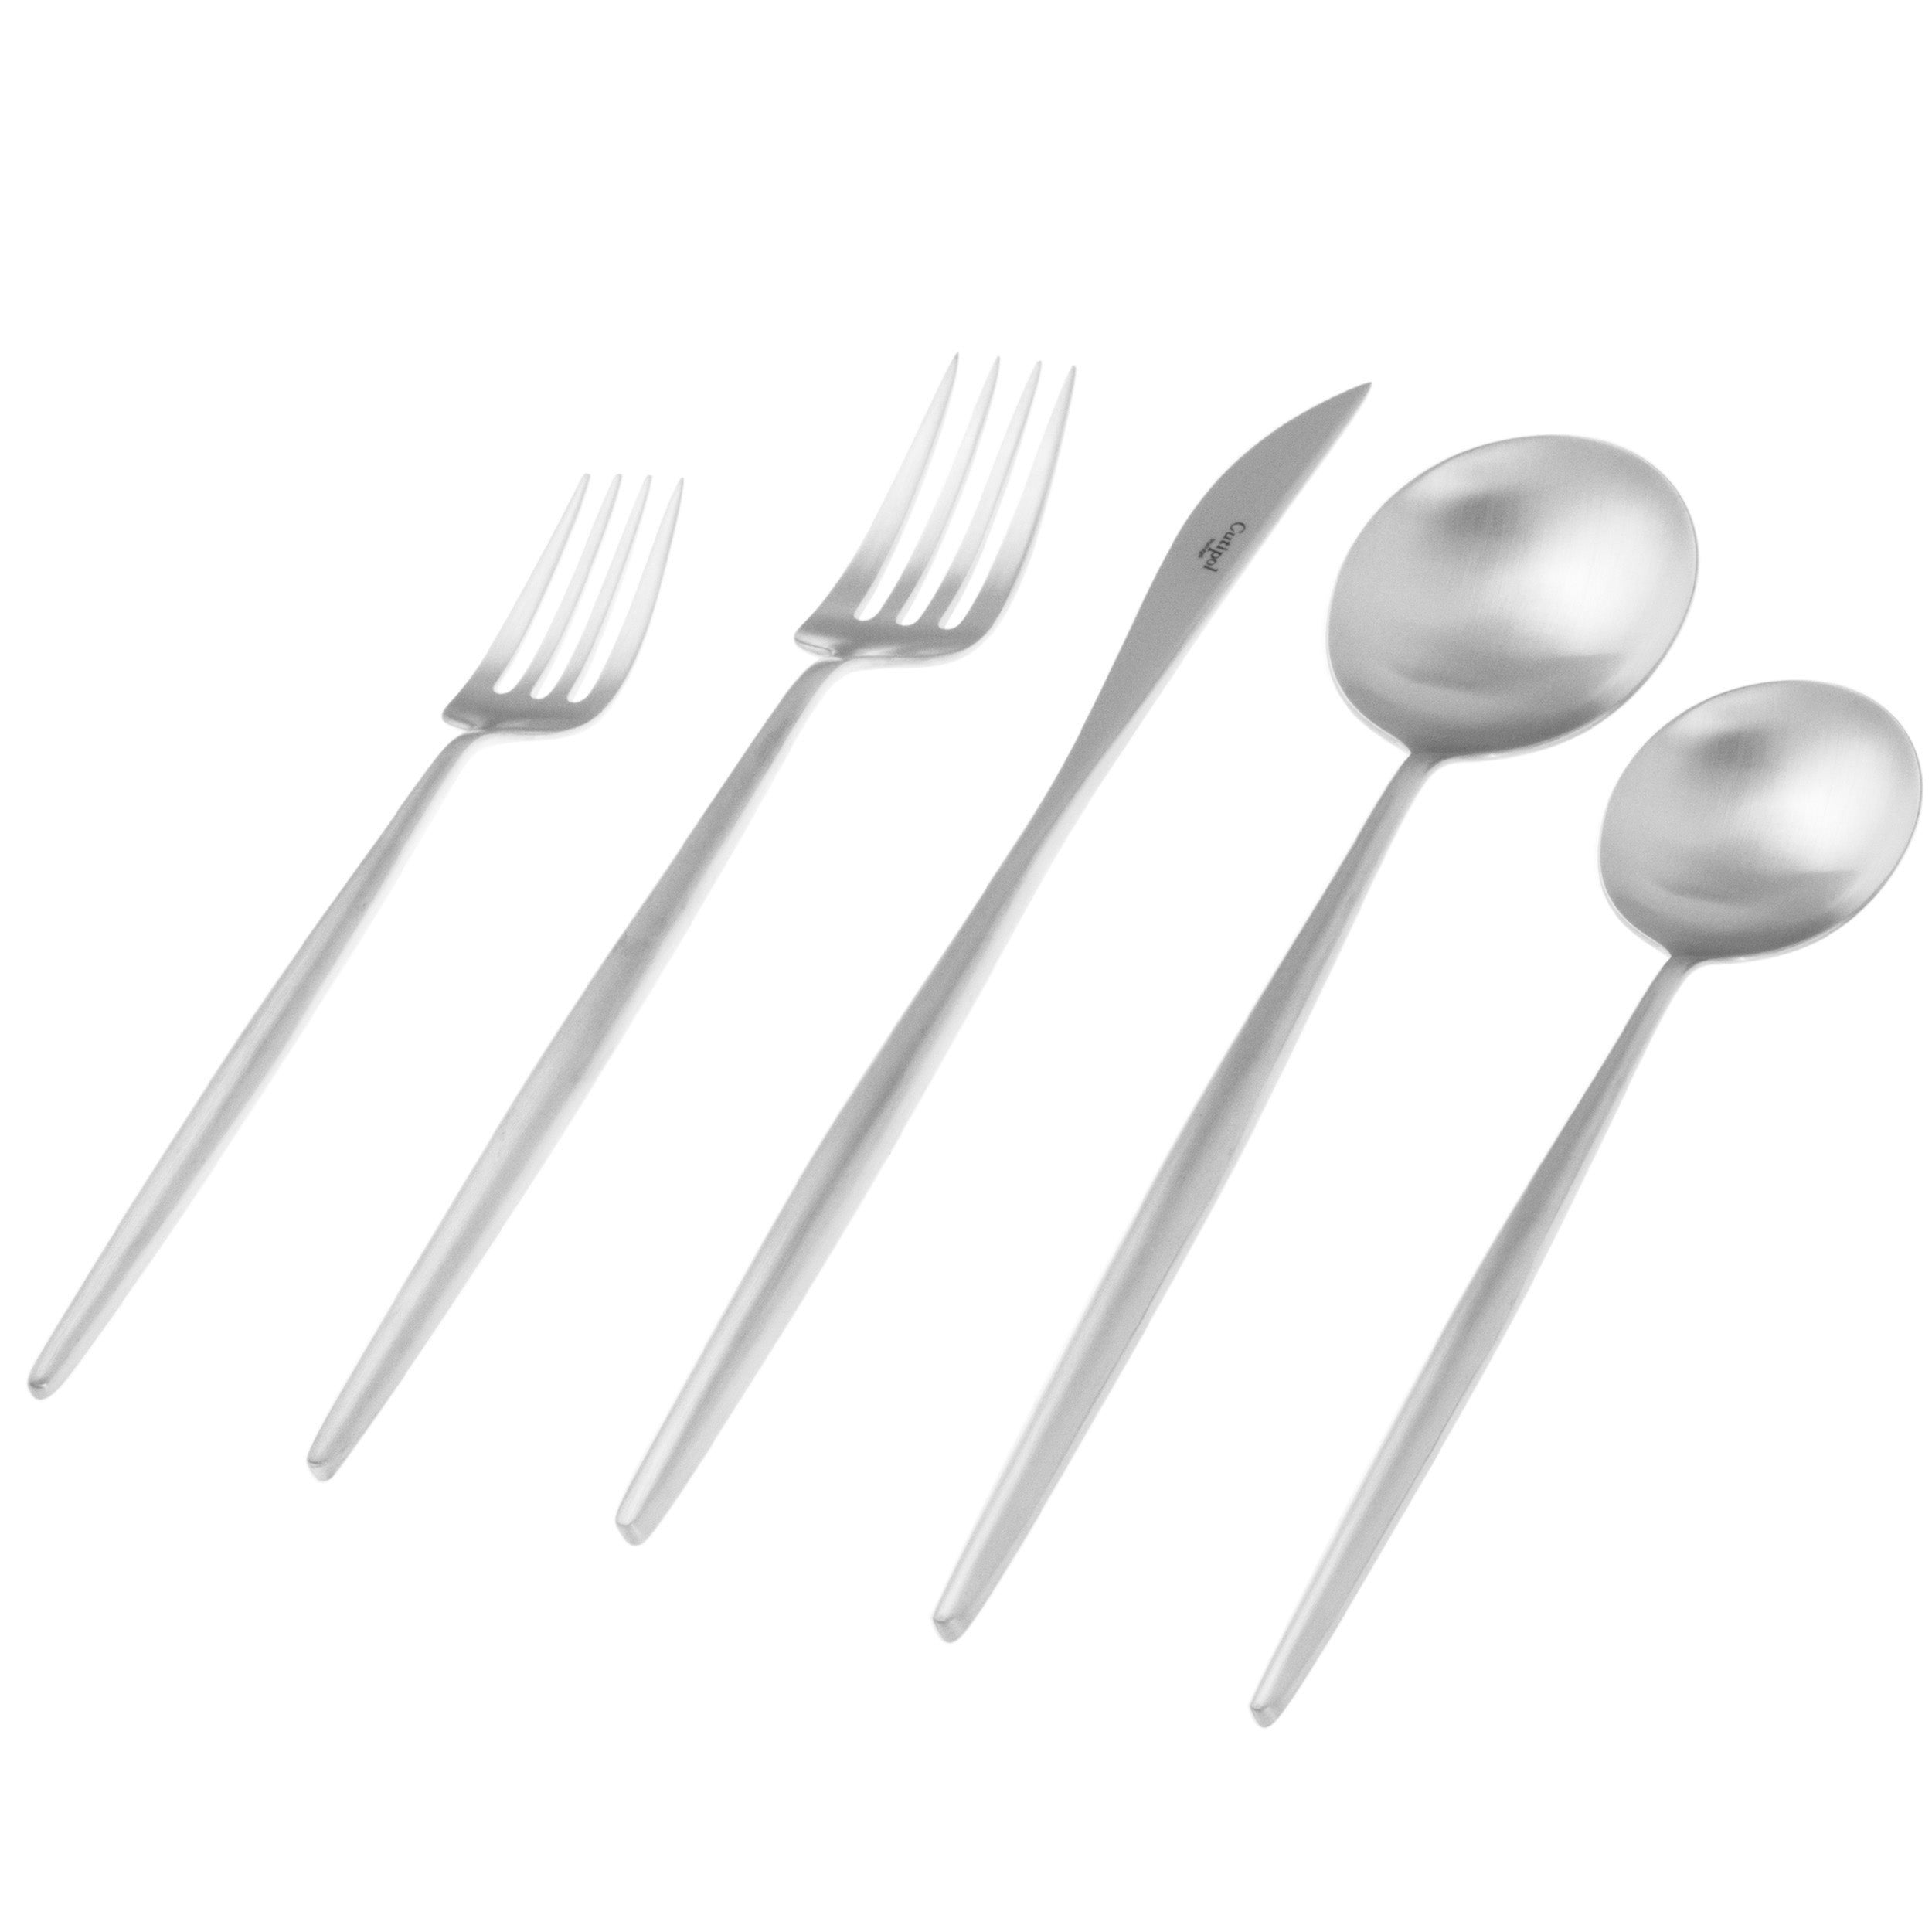 Moon Flatware: Brushed Steel